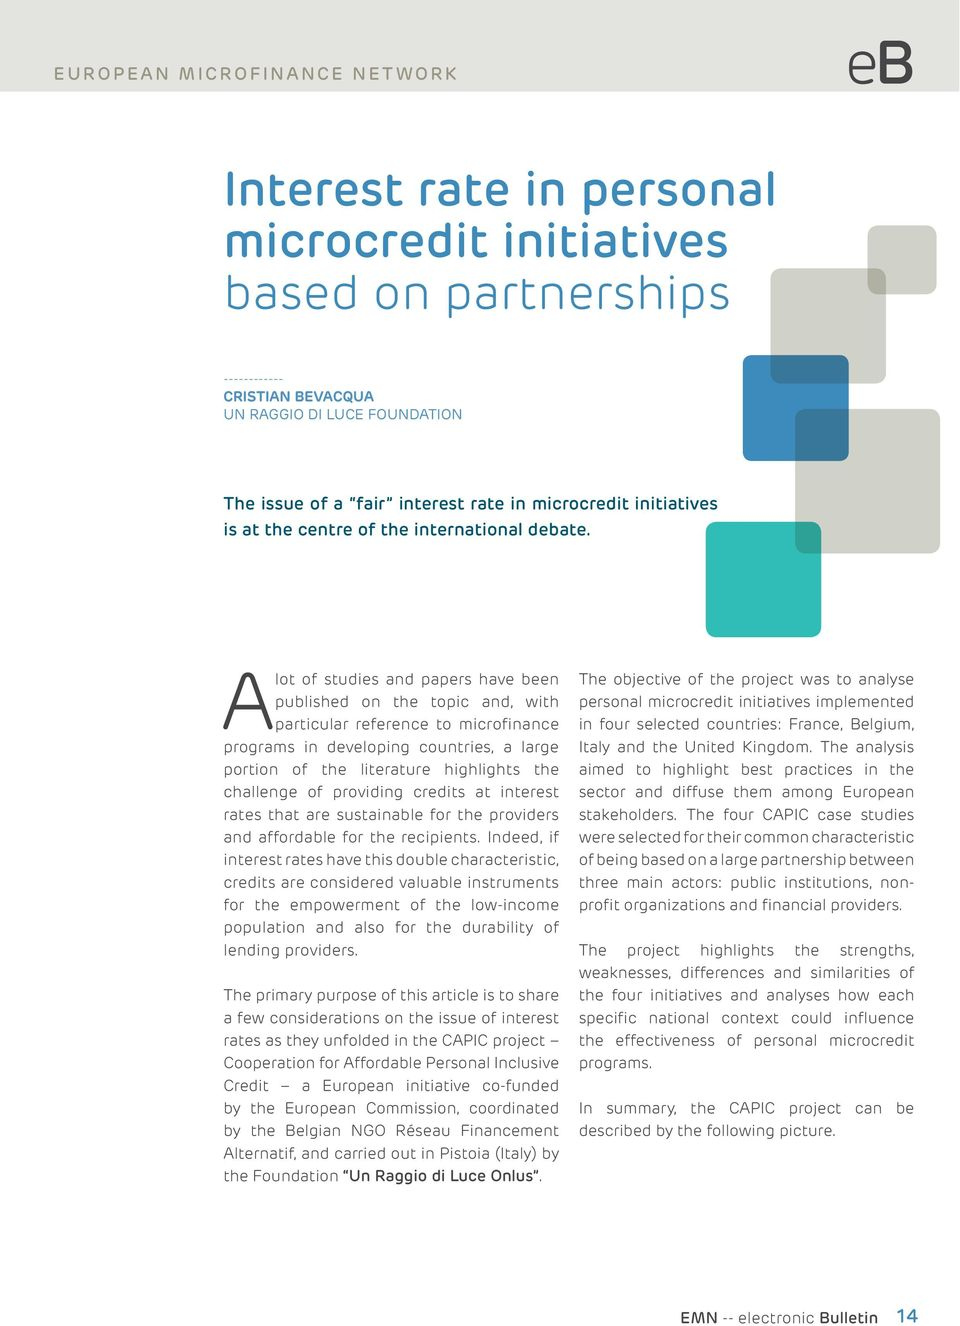 Alot of studies and papers have been published on the topic and, with particular reference to microfinance programs in developing countries, a large portion of the literature highlights the challenge